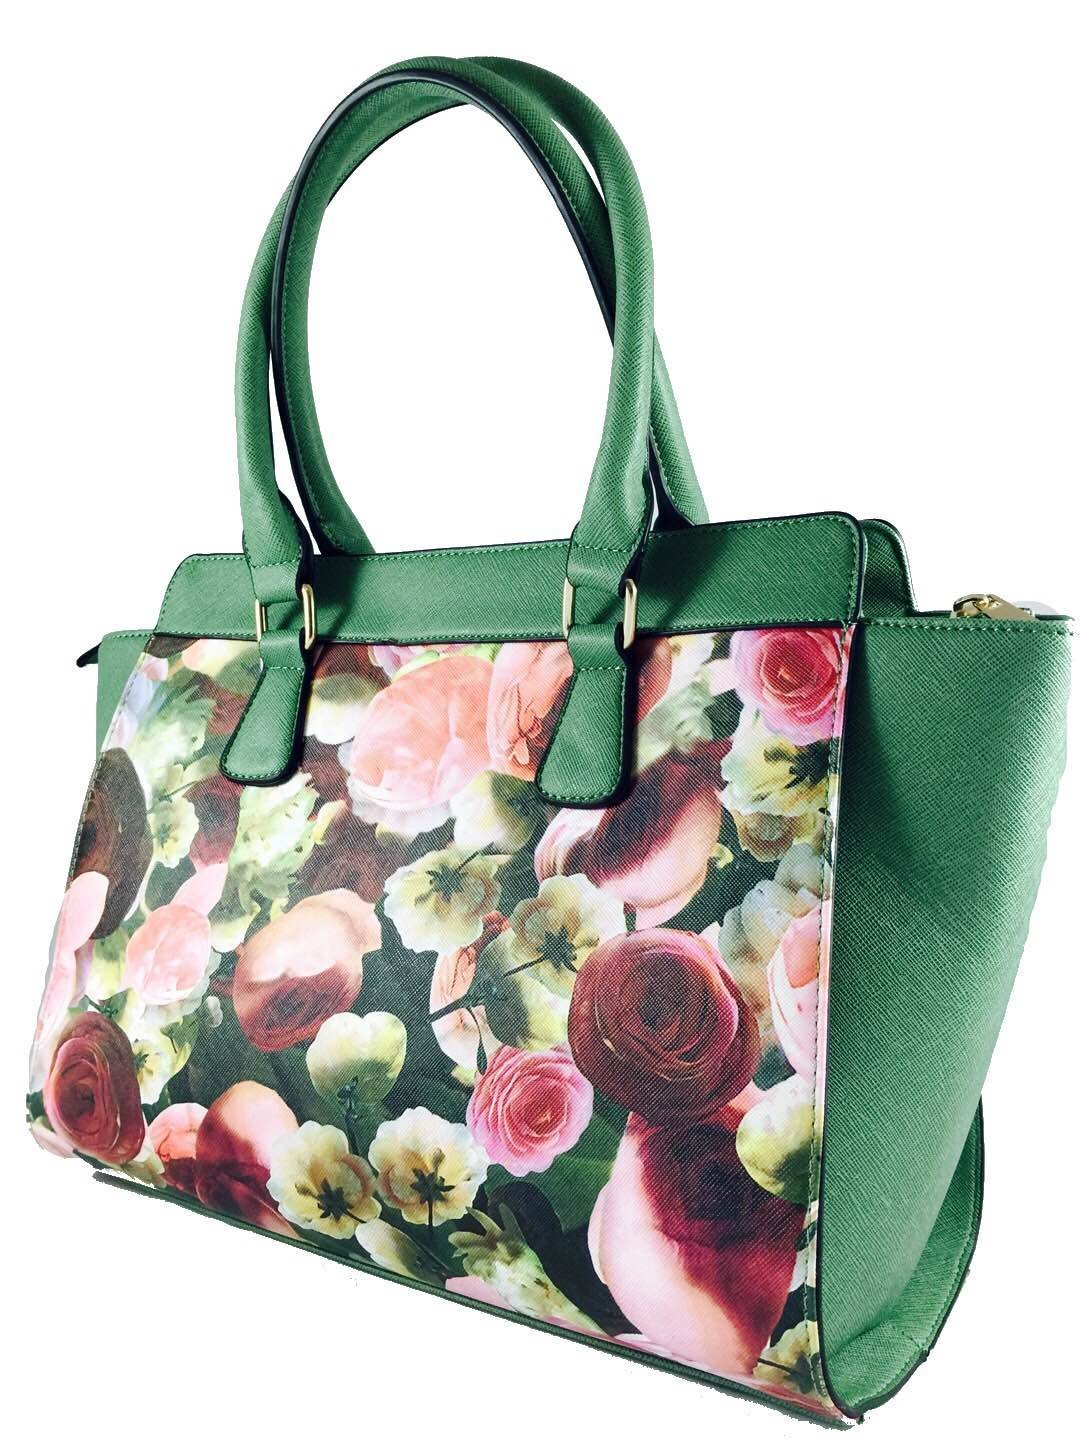 Green flower embellishment tote bag - handmade-bags